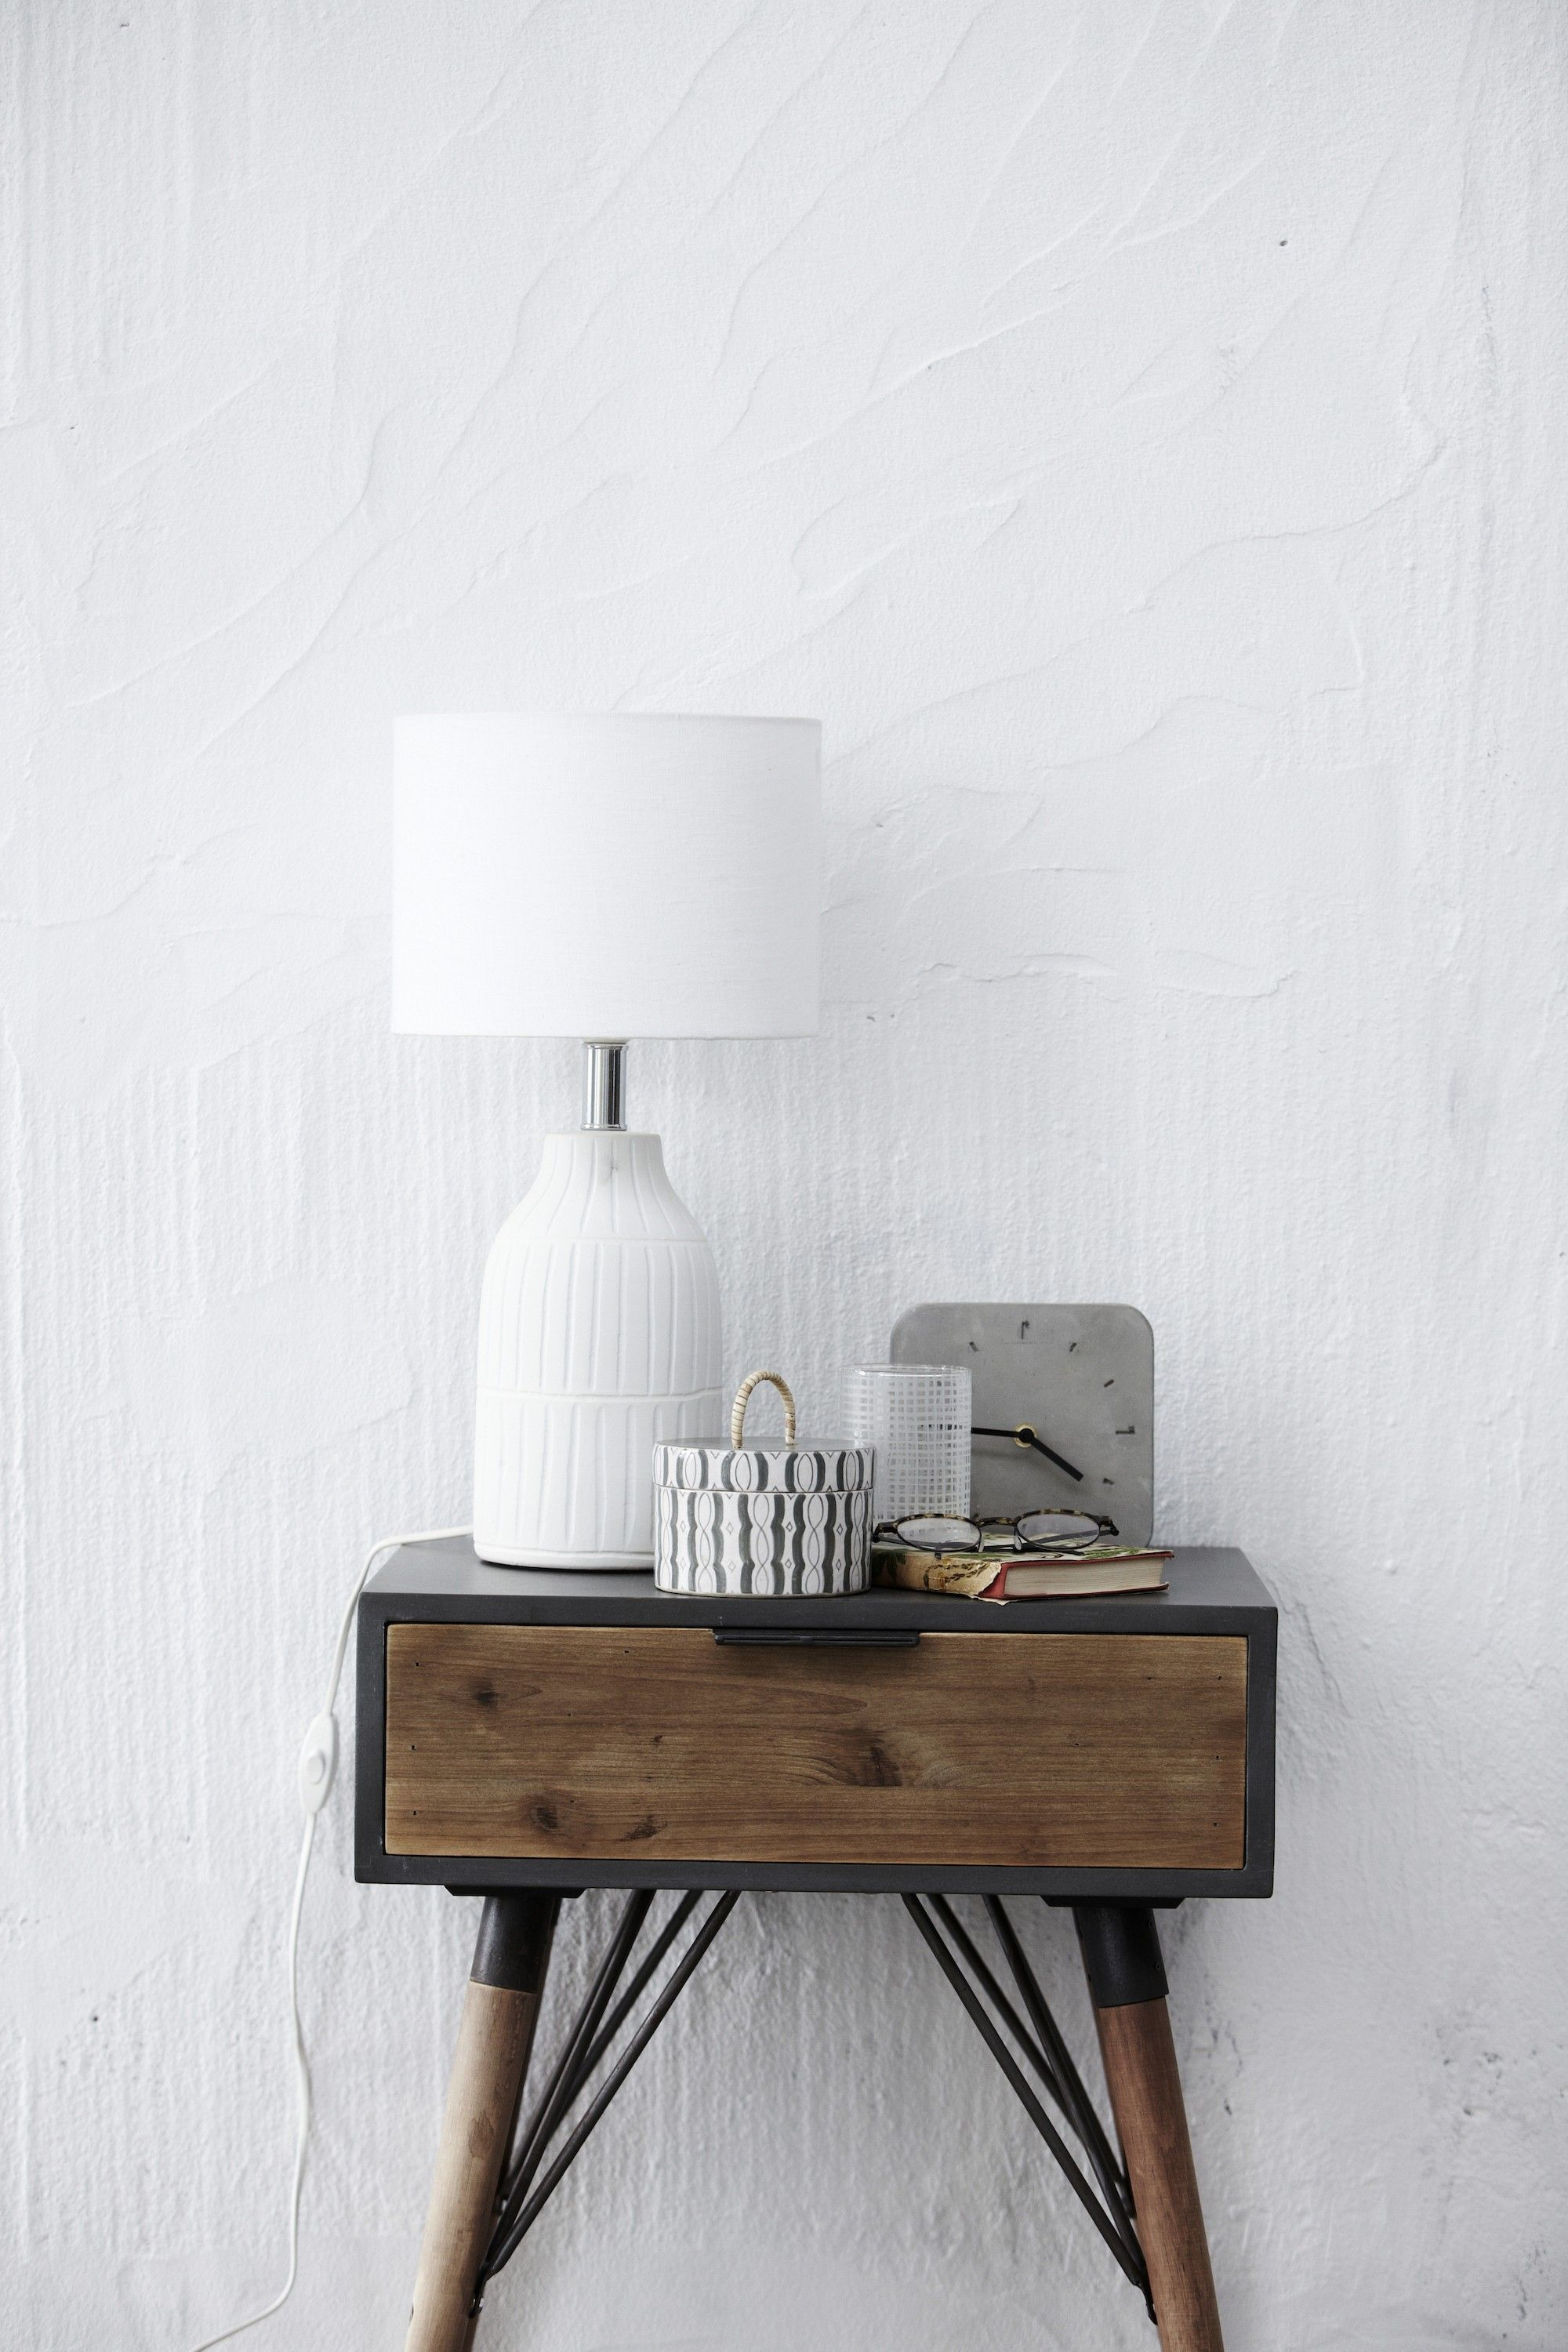 Retro Style Container Bedside Table: Iron & Wood Table